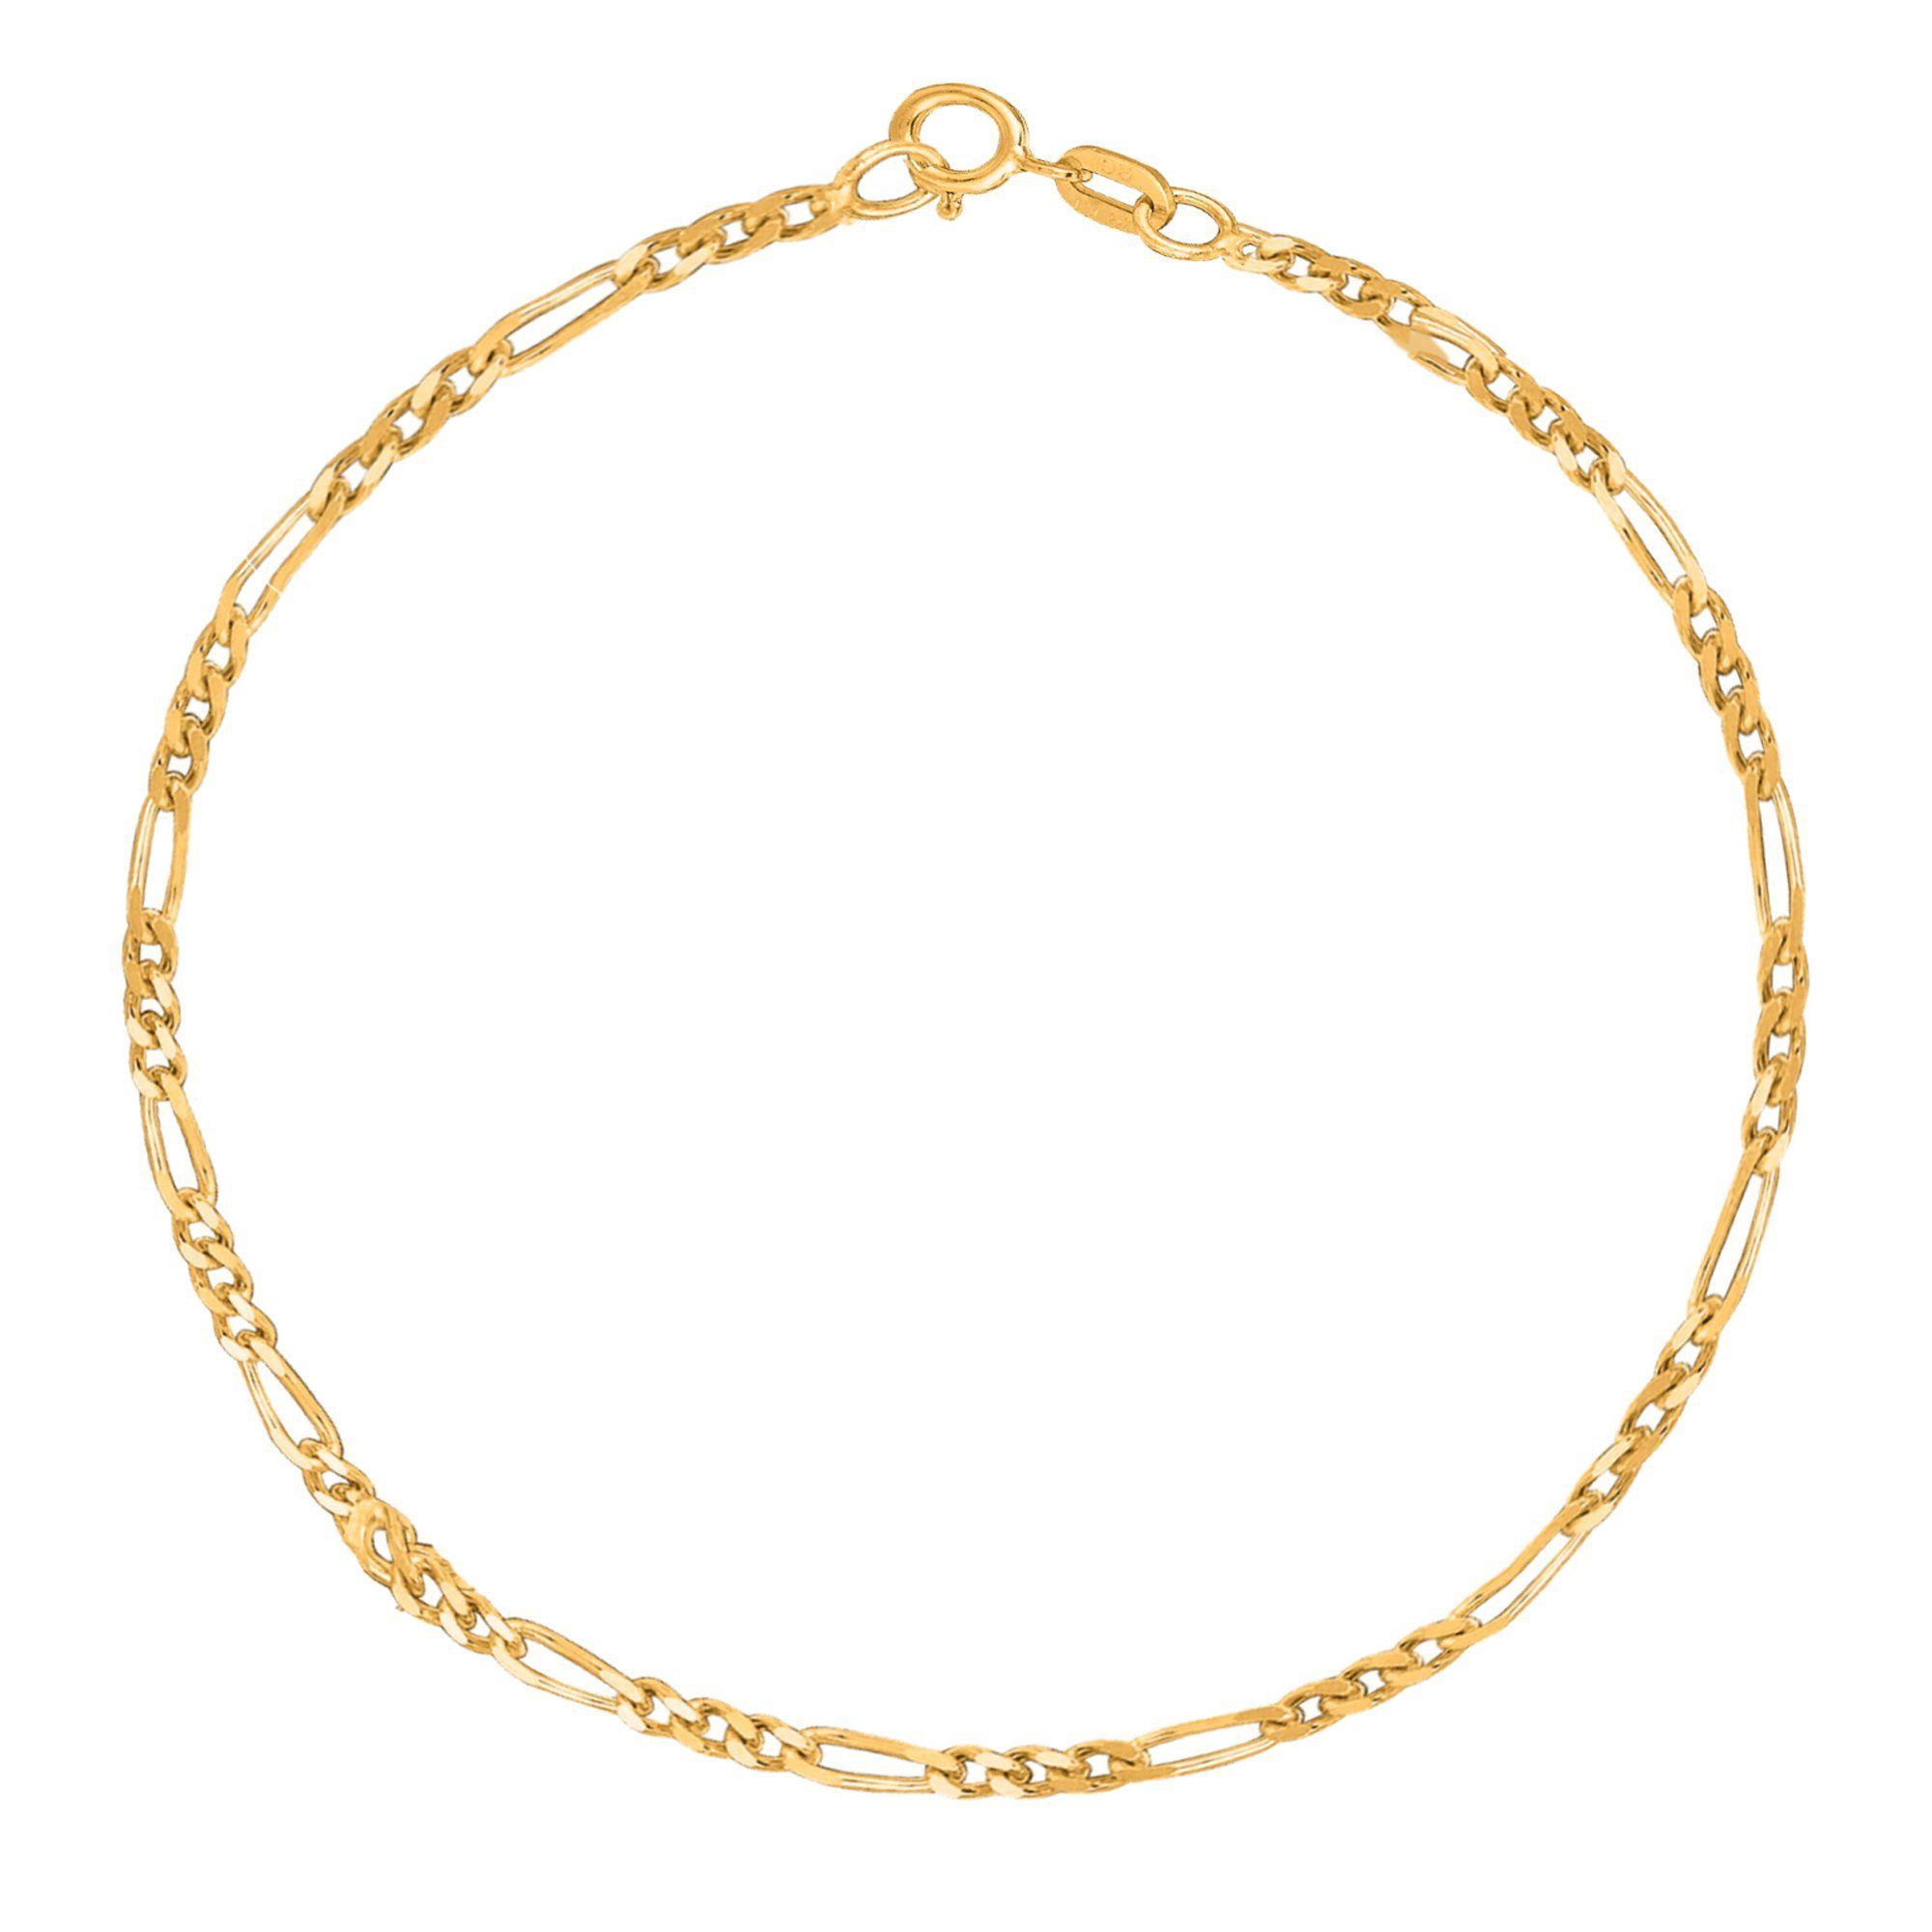 box popular bracelet jewelry david products anklet bracelets anklets ankle yurman chain enlarged body